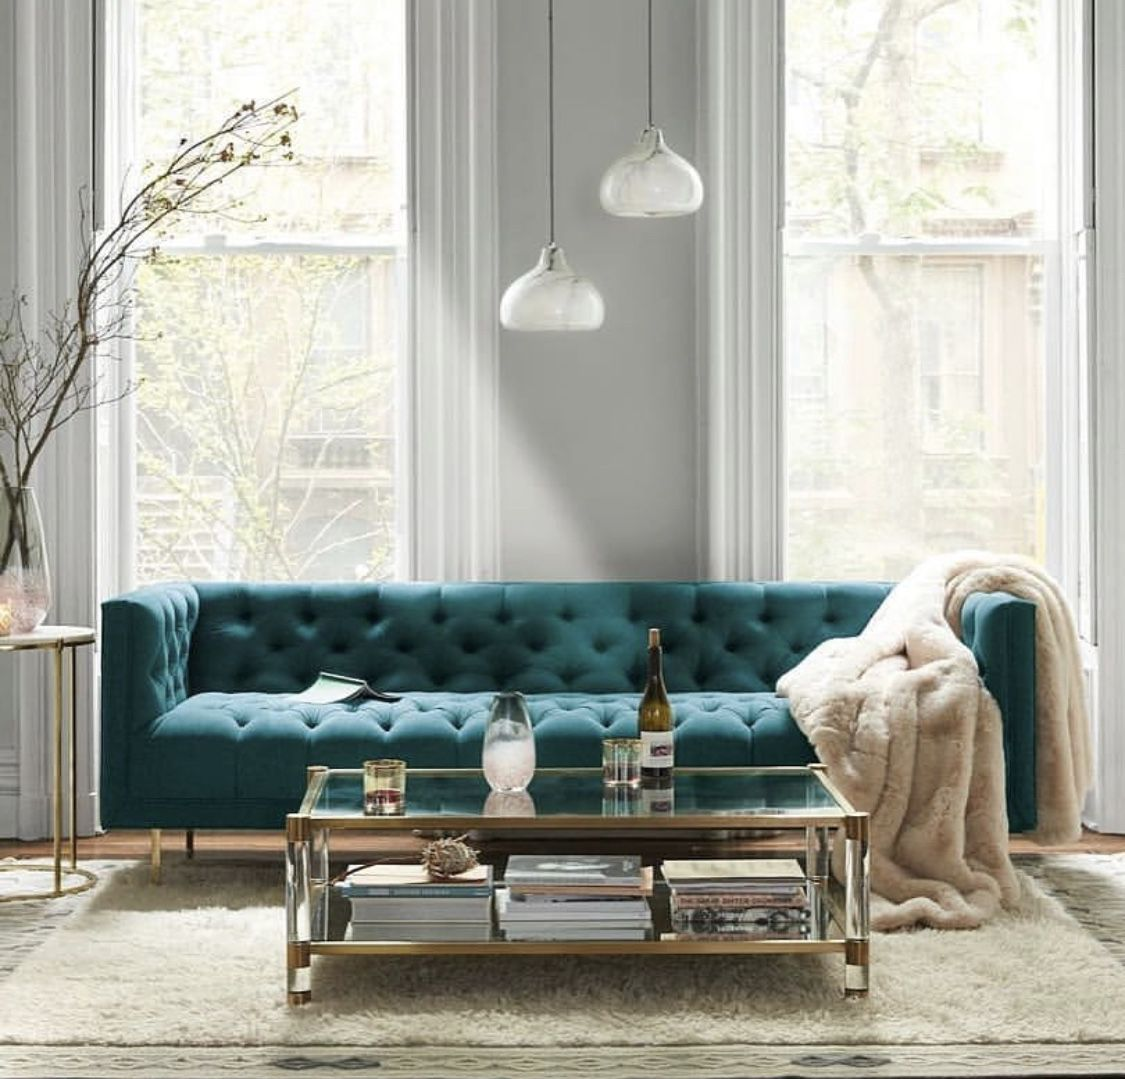 Teal Tufted Sofa Cozy Living Room Luxury Home Custom Home